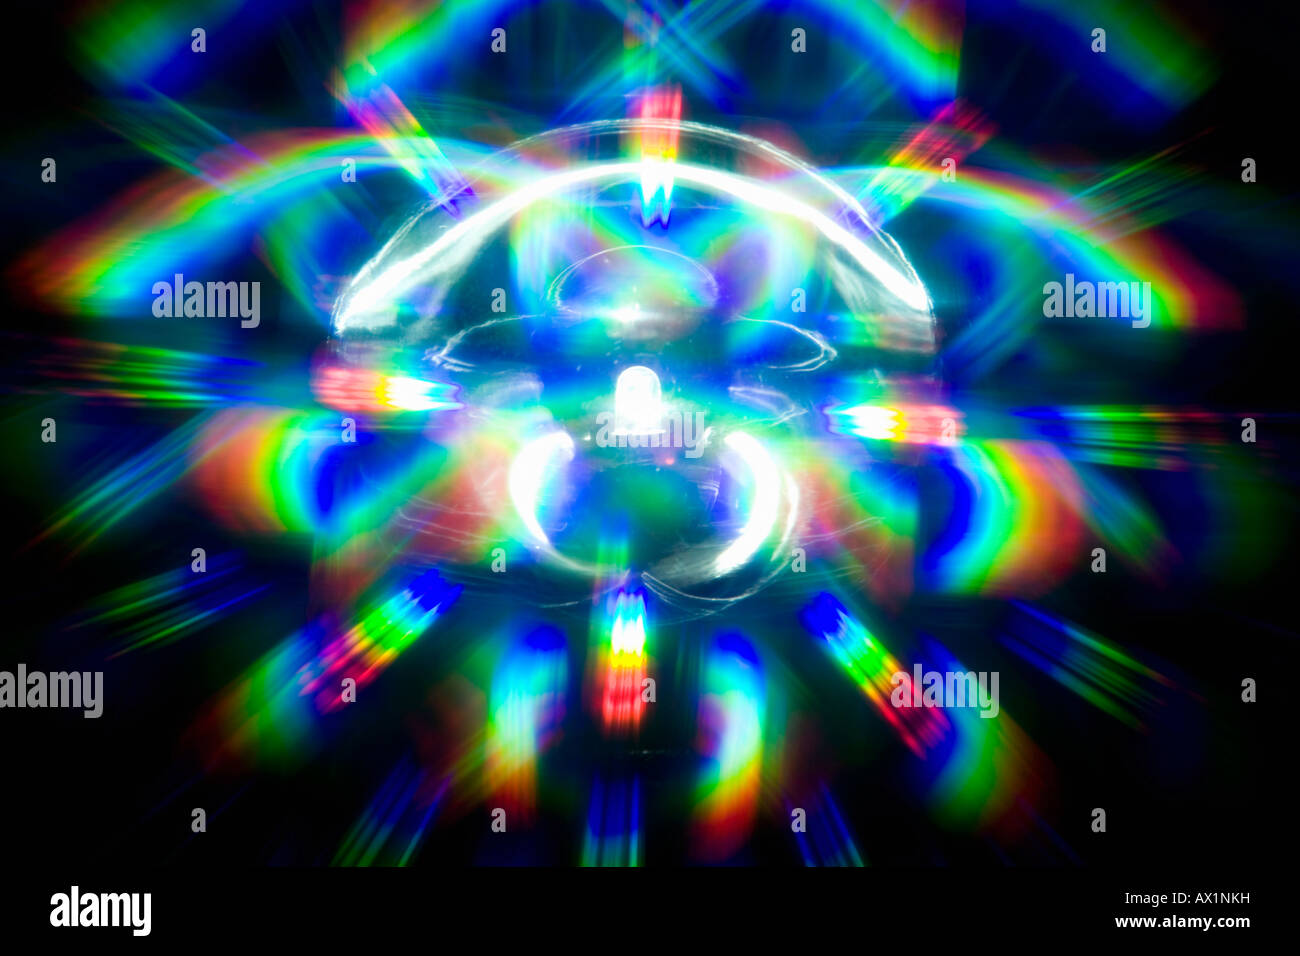 The spectrum of colors shining from a light - Stock Image